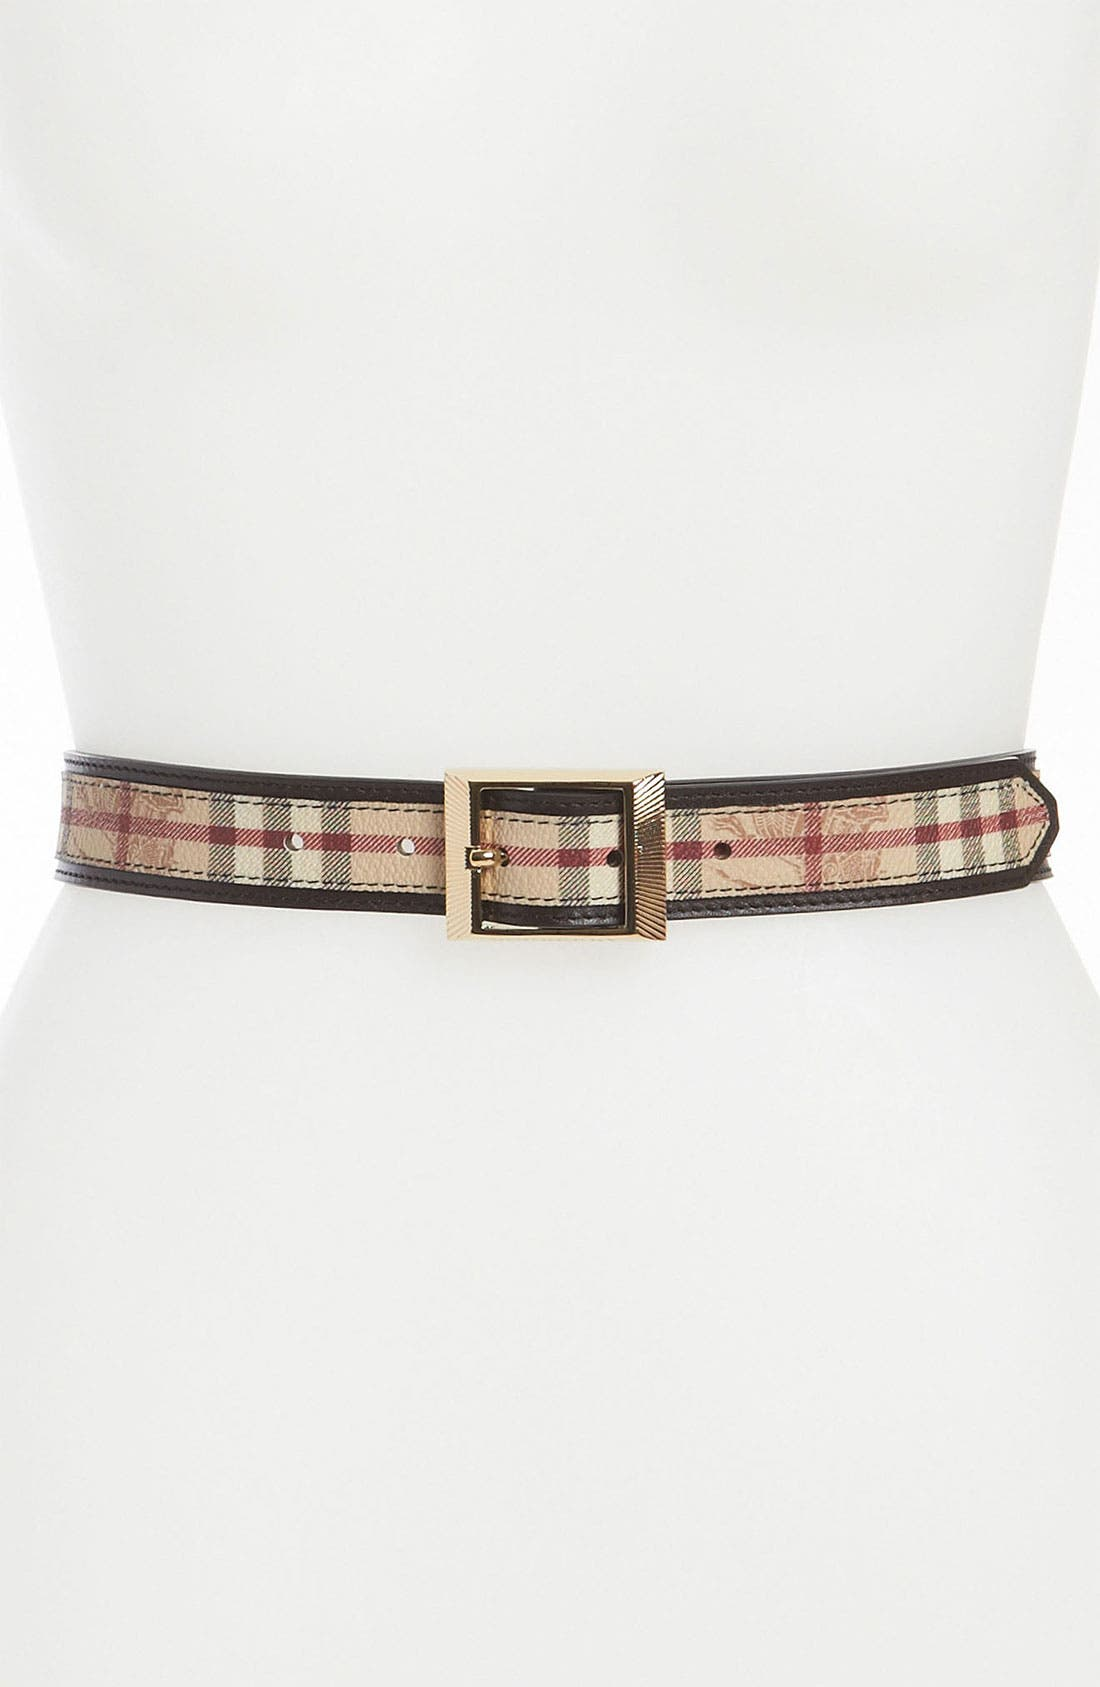 Alternate Image 1 Selected - Burberry Check Print Leather Belt